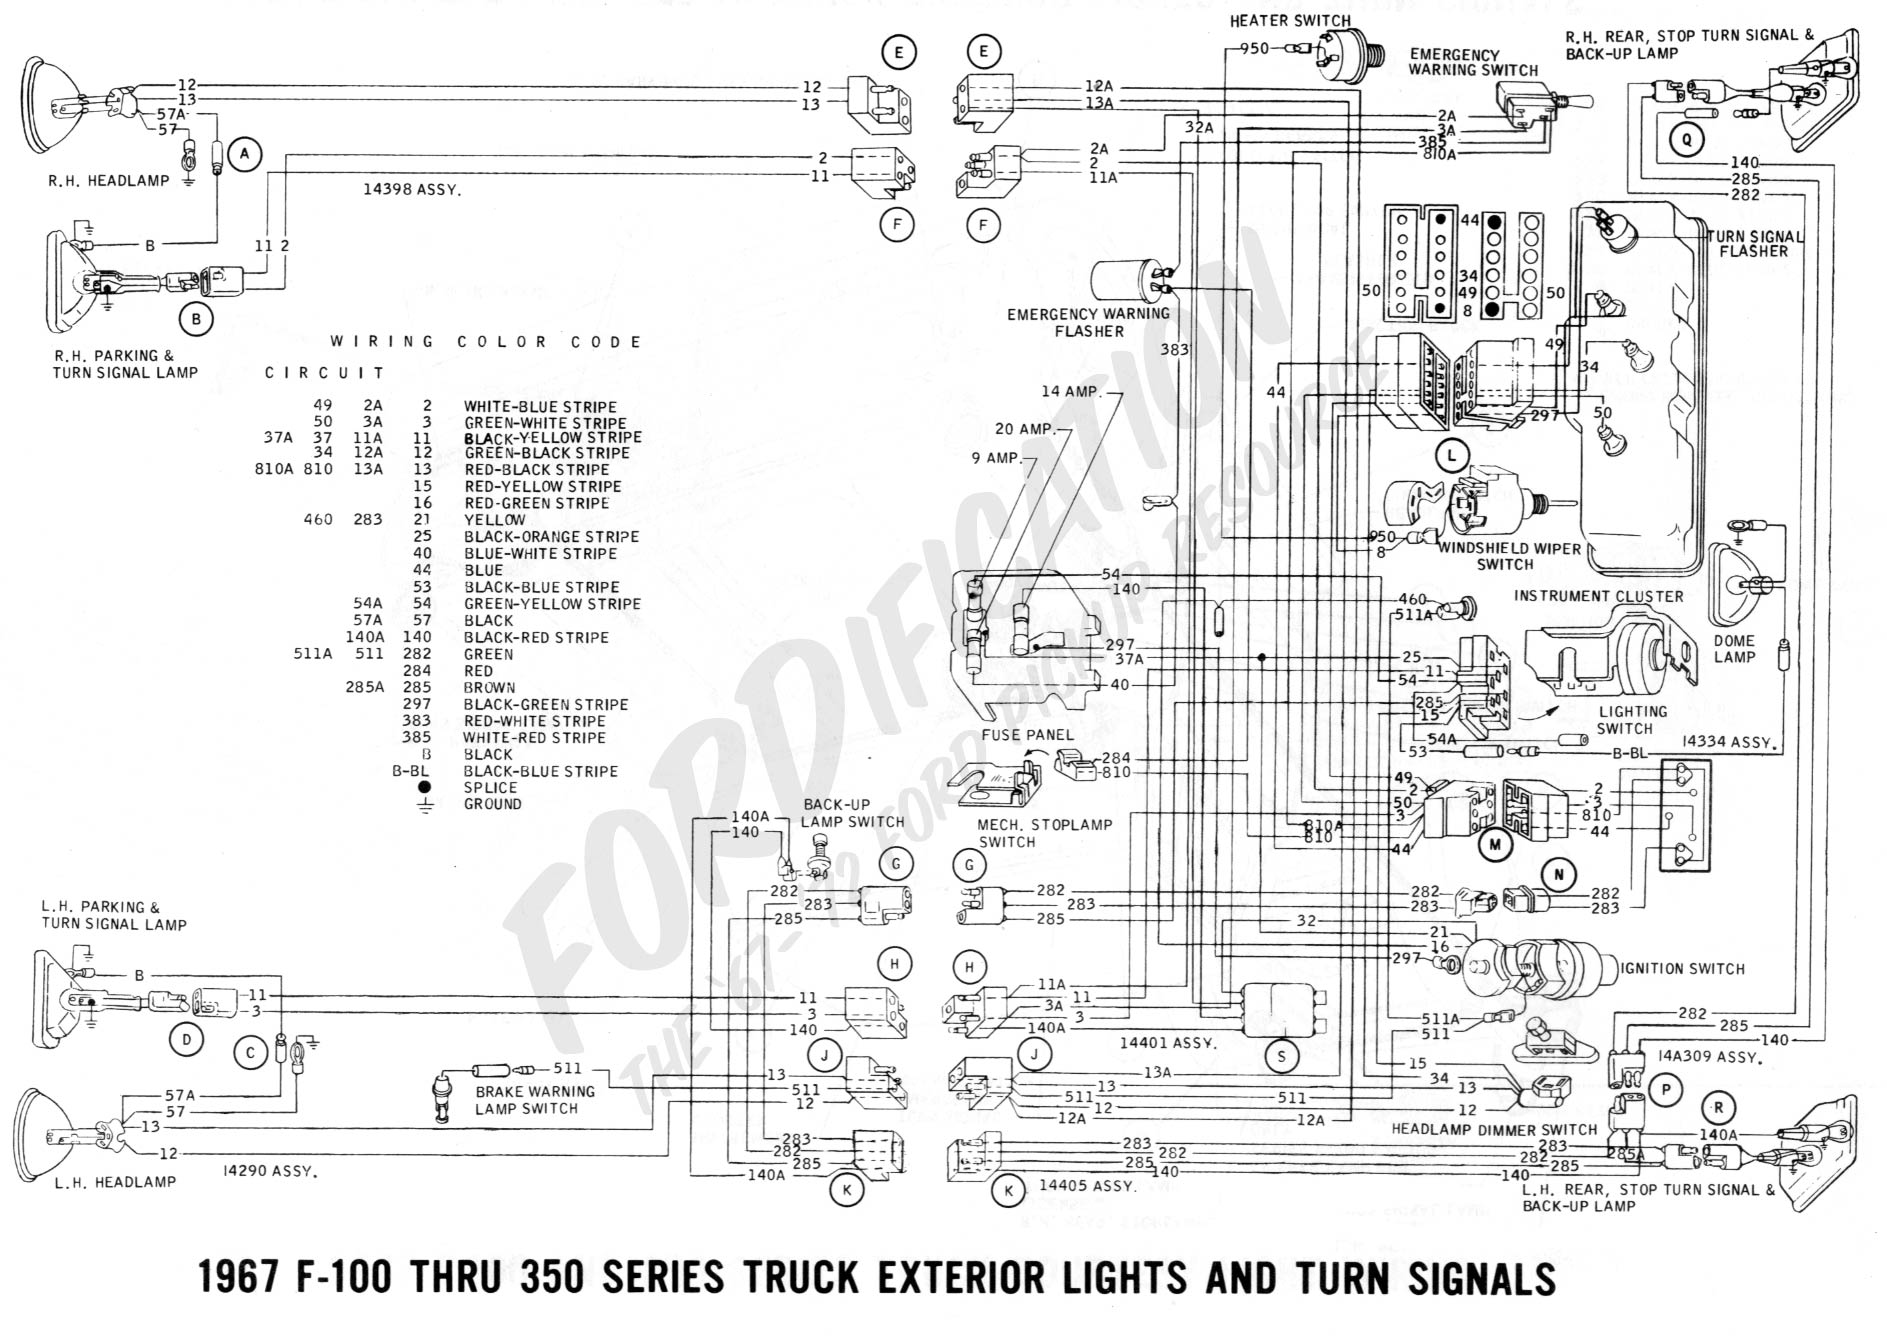 f250 wiring diagram Images Gallery